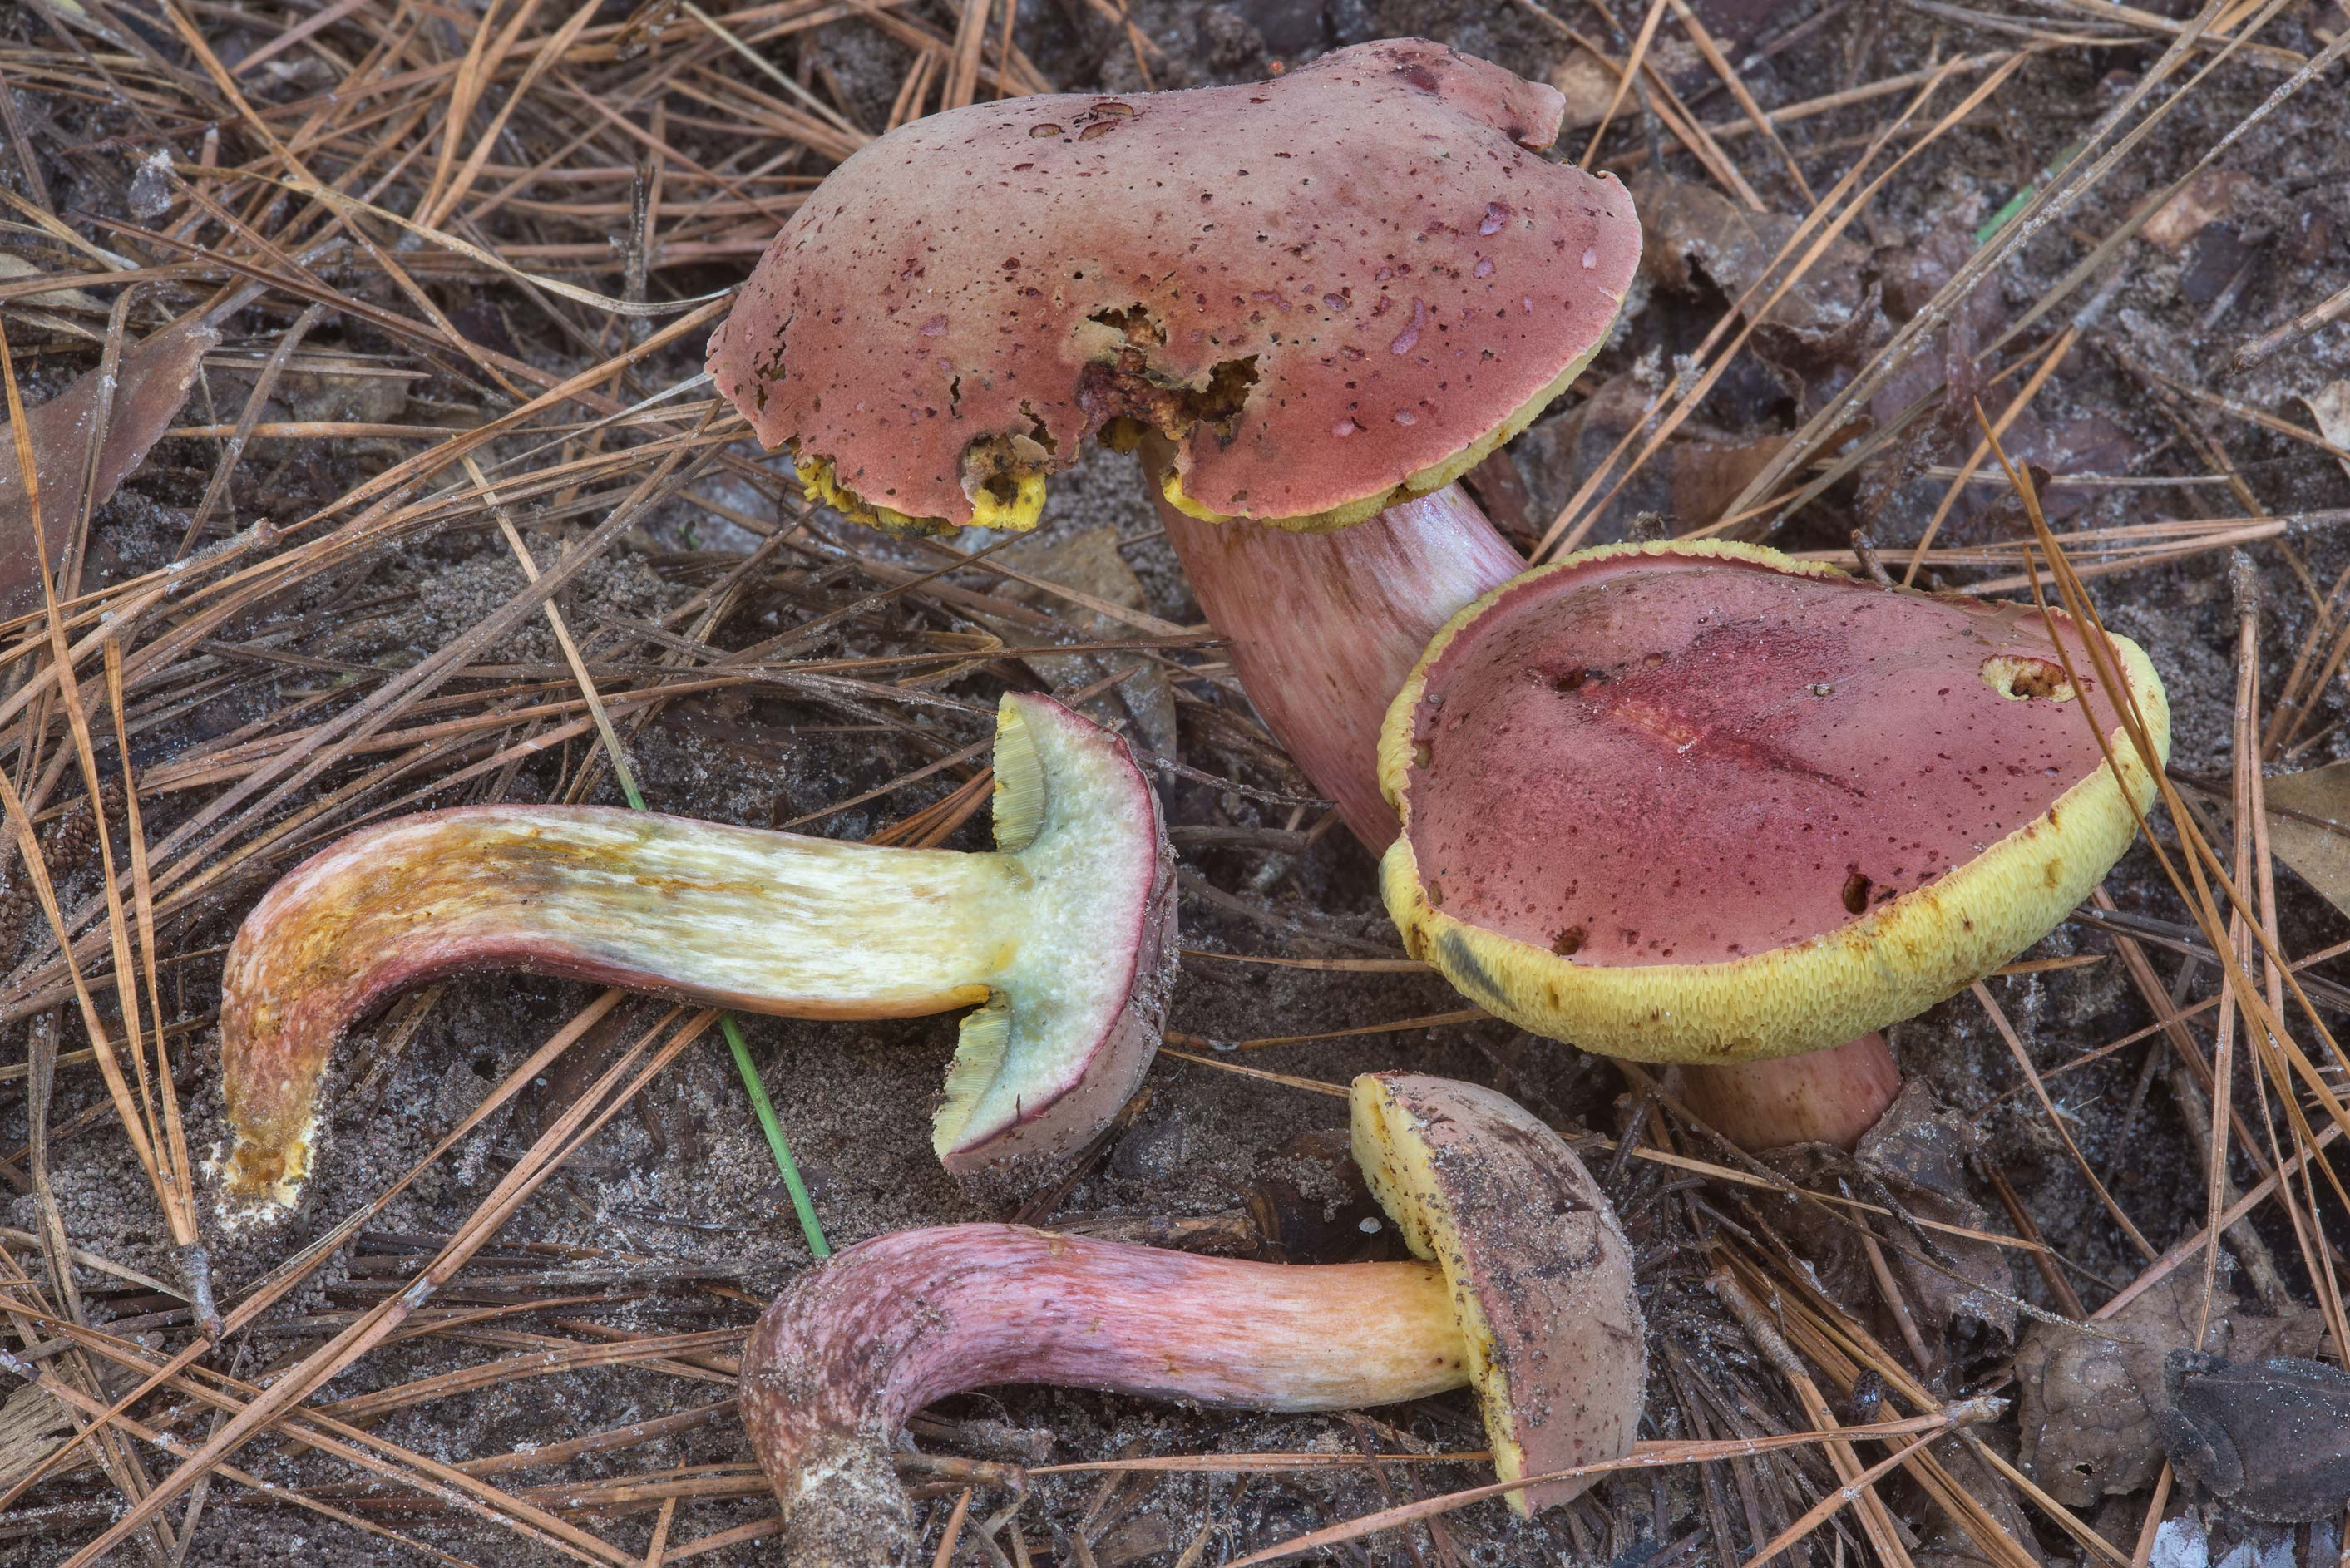 Dissected Boletus patrioticus mushrooms on Caney...National Forest near Huntsville. Texas